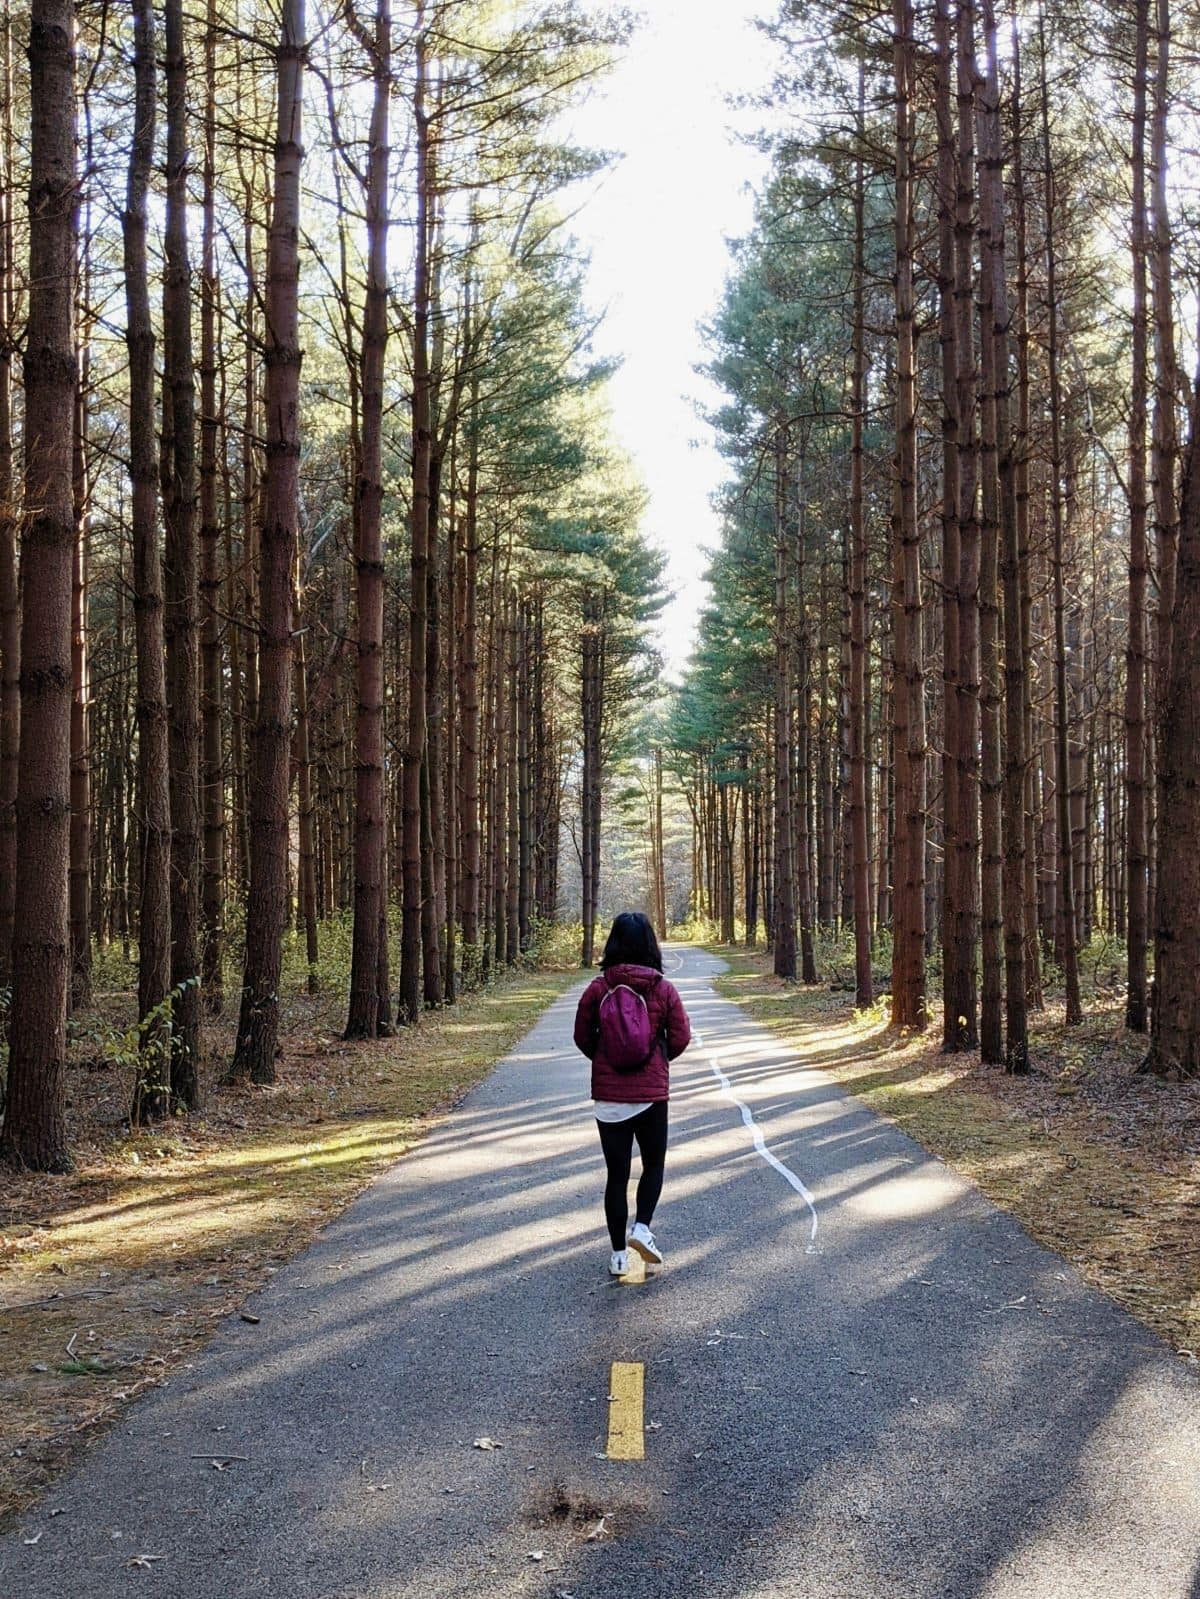 Back of woman walking on a paved trail through a forest of tall pine trees at Tall Pines Area Walnut Woods